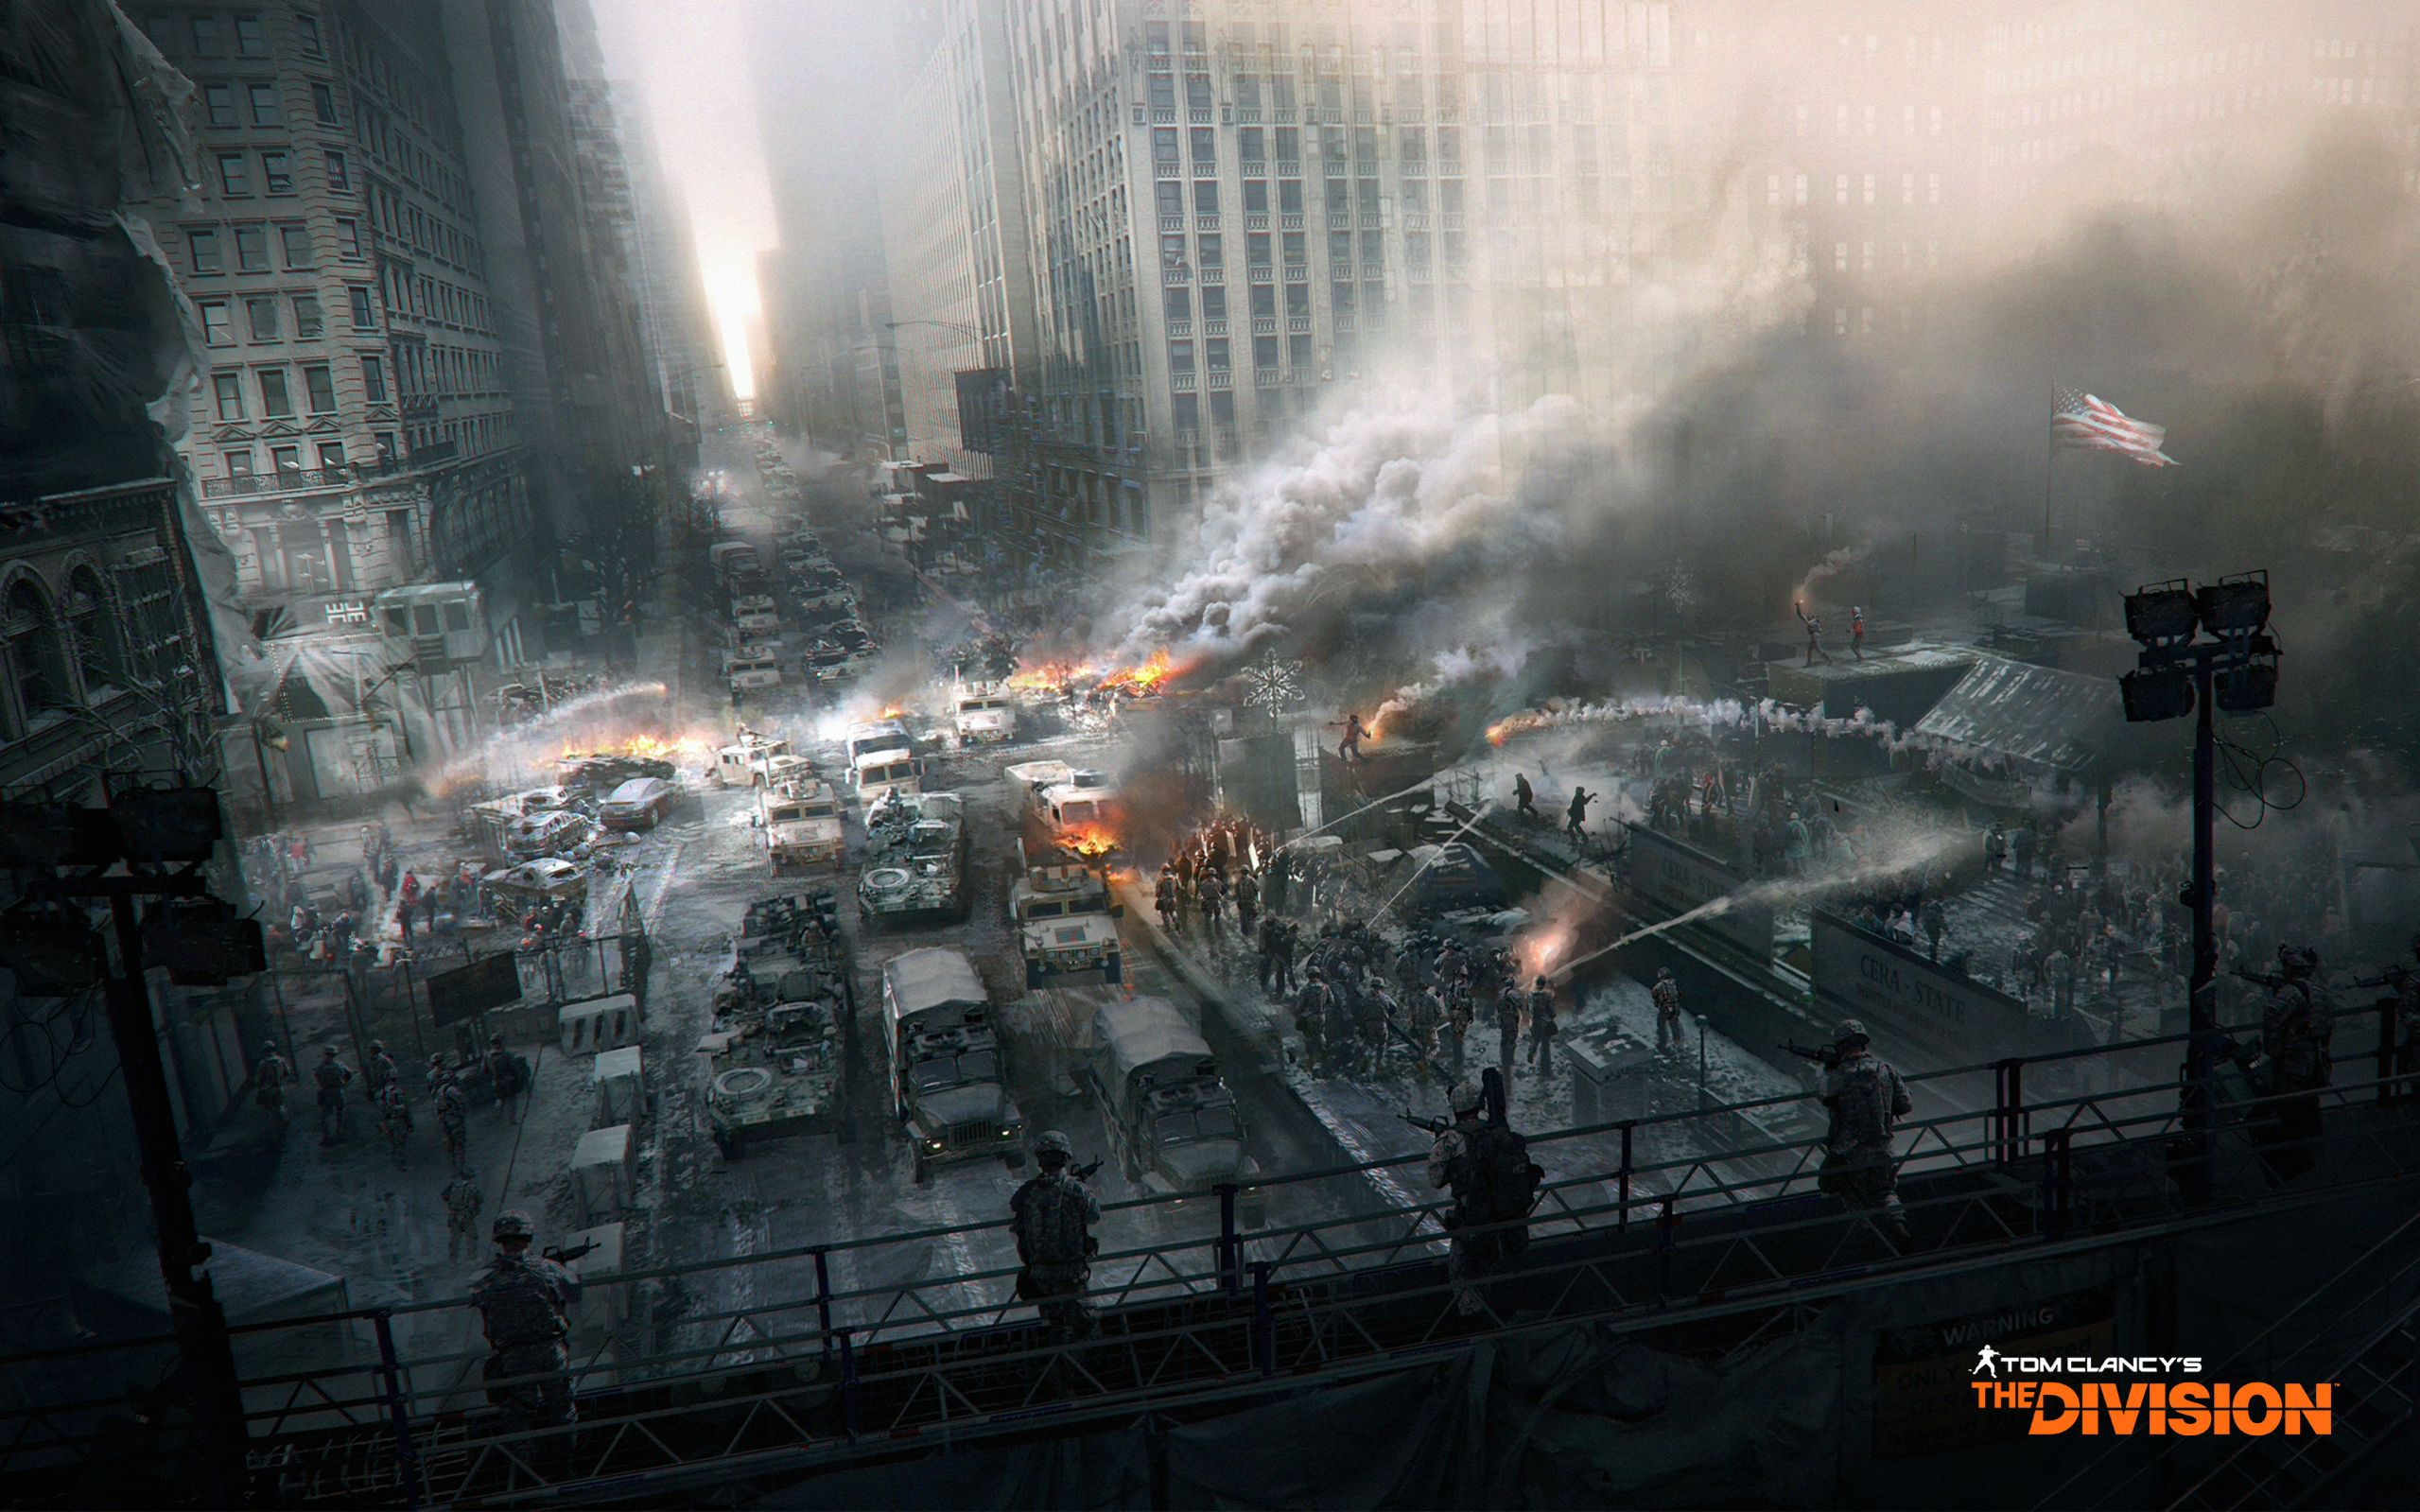 Tom Clancy's The Division Setting